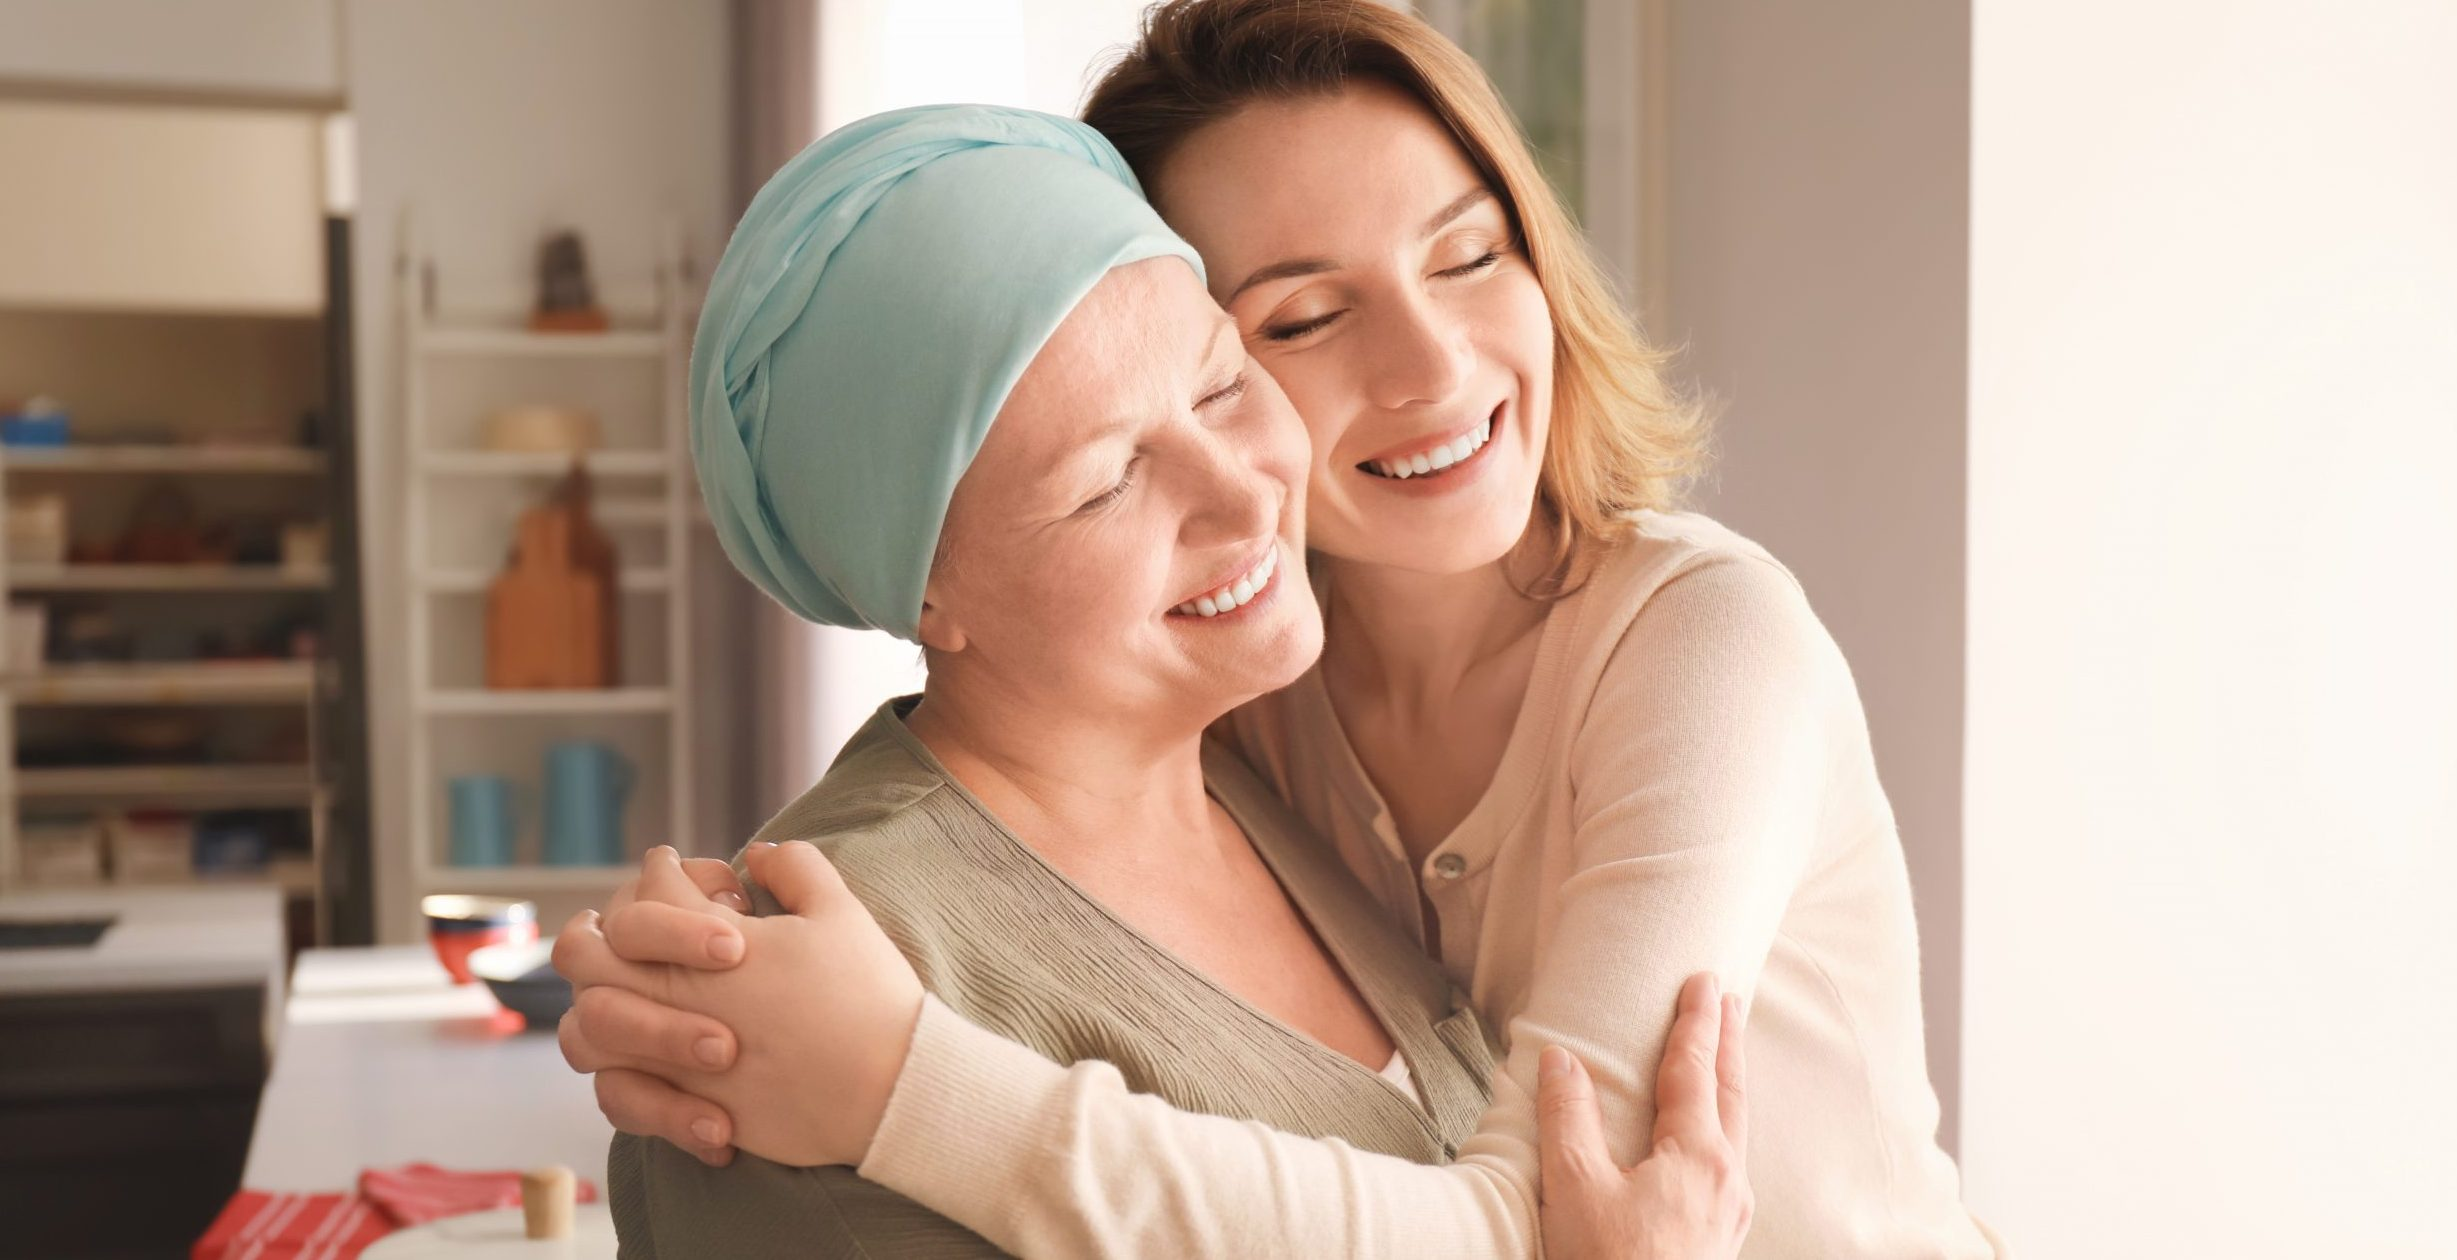 Caregiver, The Proper Care & Feeding of The Cancer Caregiver